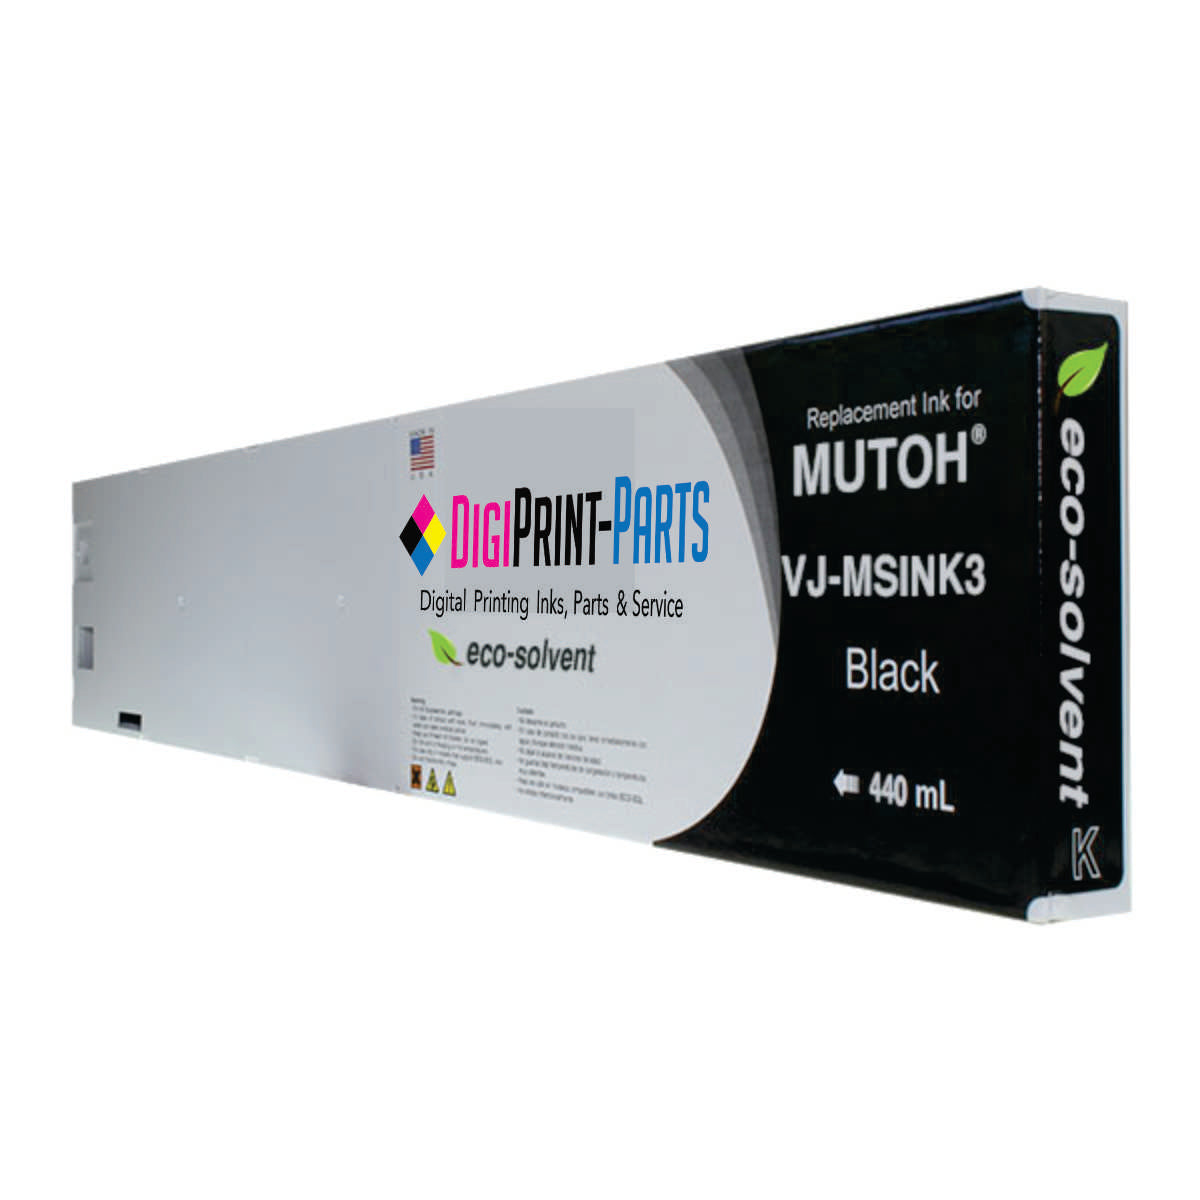 Mutoh Valuejet Eco-Ultra Ink 440ml Made in the USA